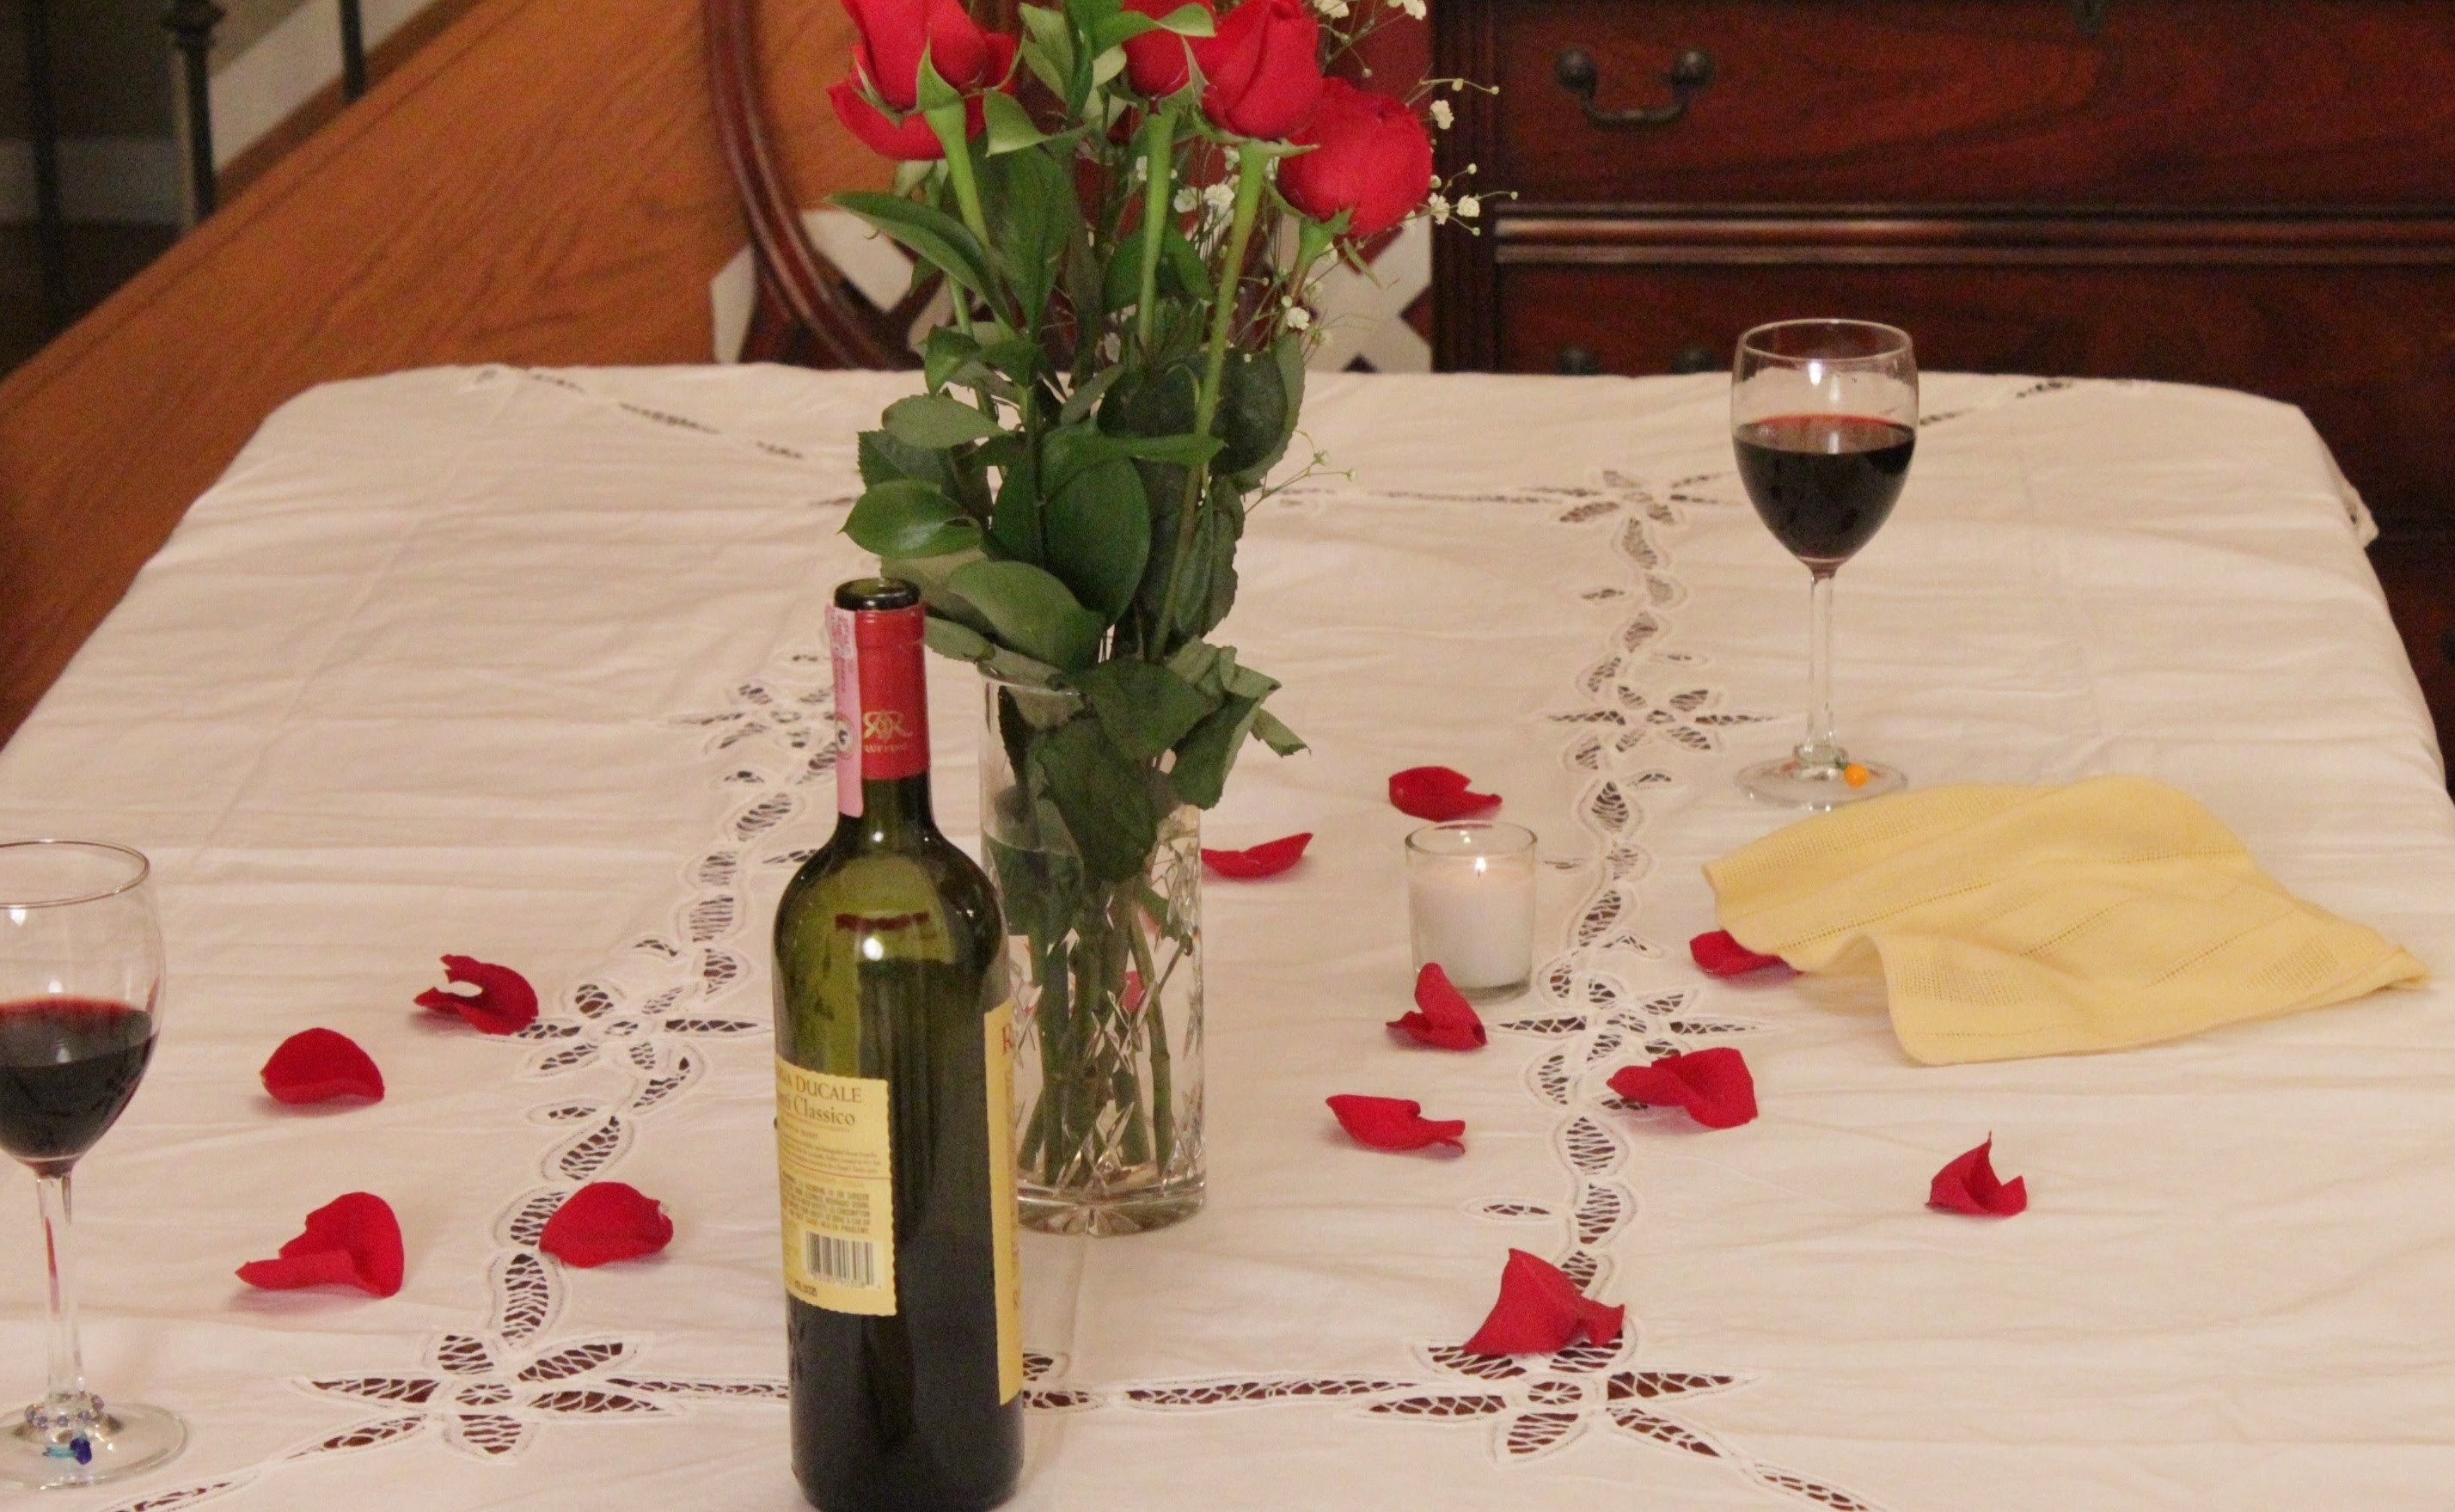 Romantic Dinner For Two At Home  Romantic Dinner Ideas For Two At HomeWritings and Papers